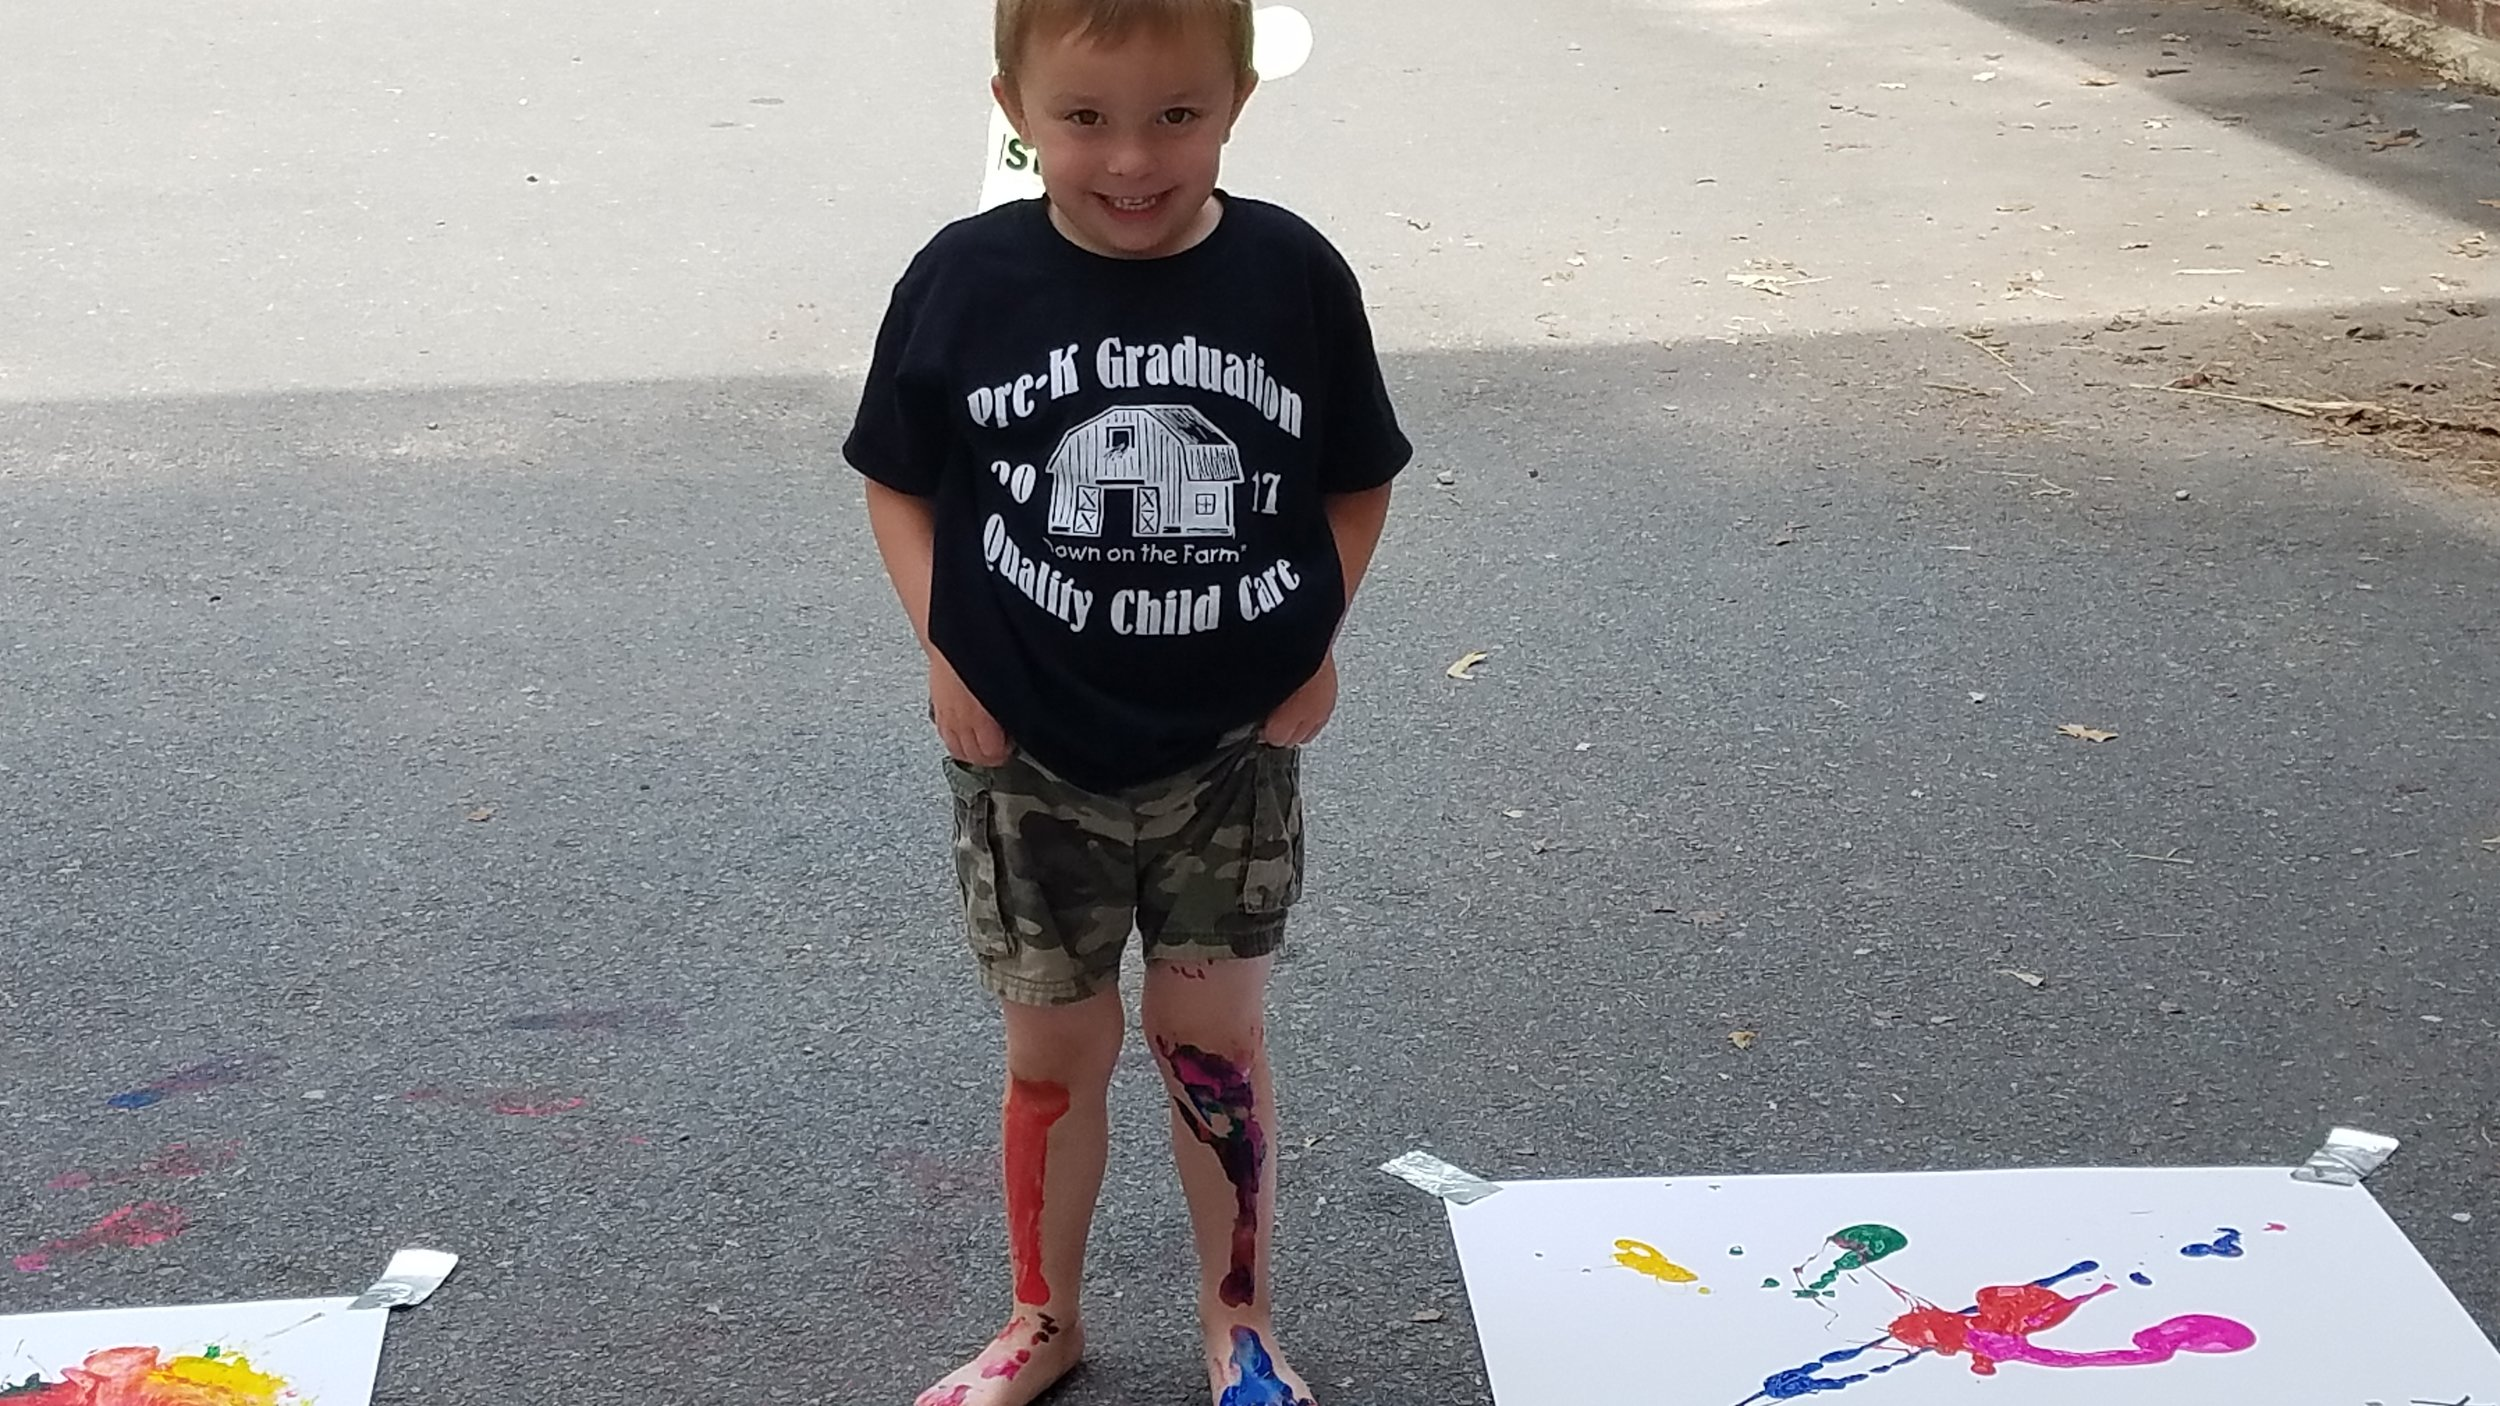 Cabot East Justice Childcare having fun messy paint sunny day 3.jpg